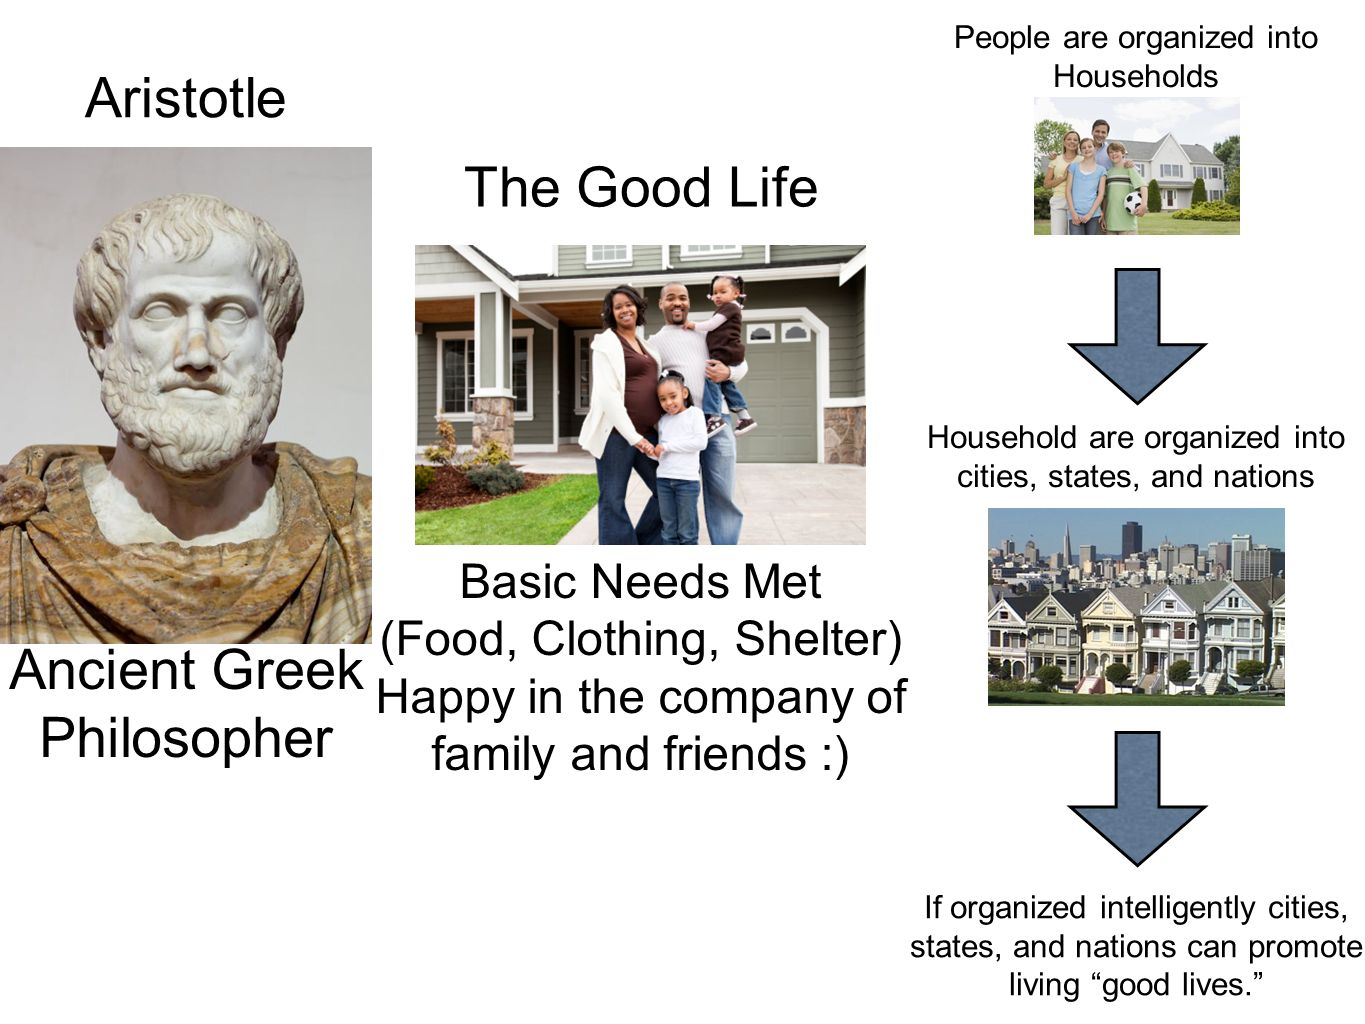 aristotle and the good life For aristotle, morality is the study of the good life the good life includes good  choices, good actions, good habits, good character.